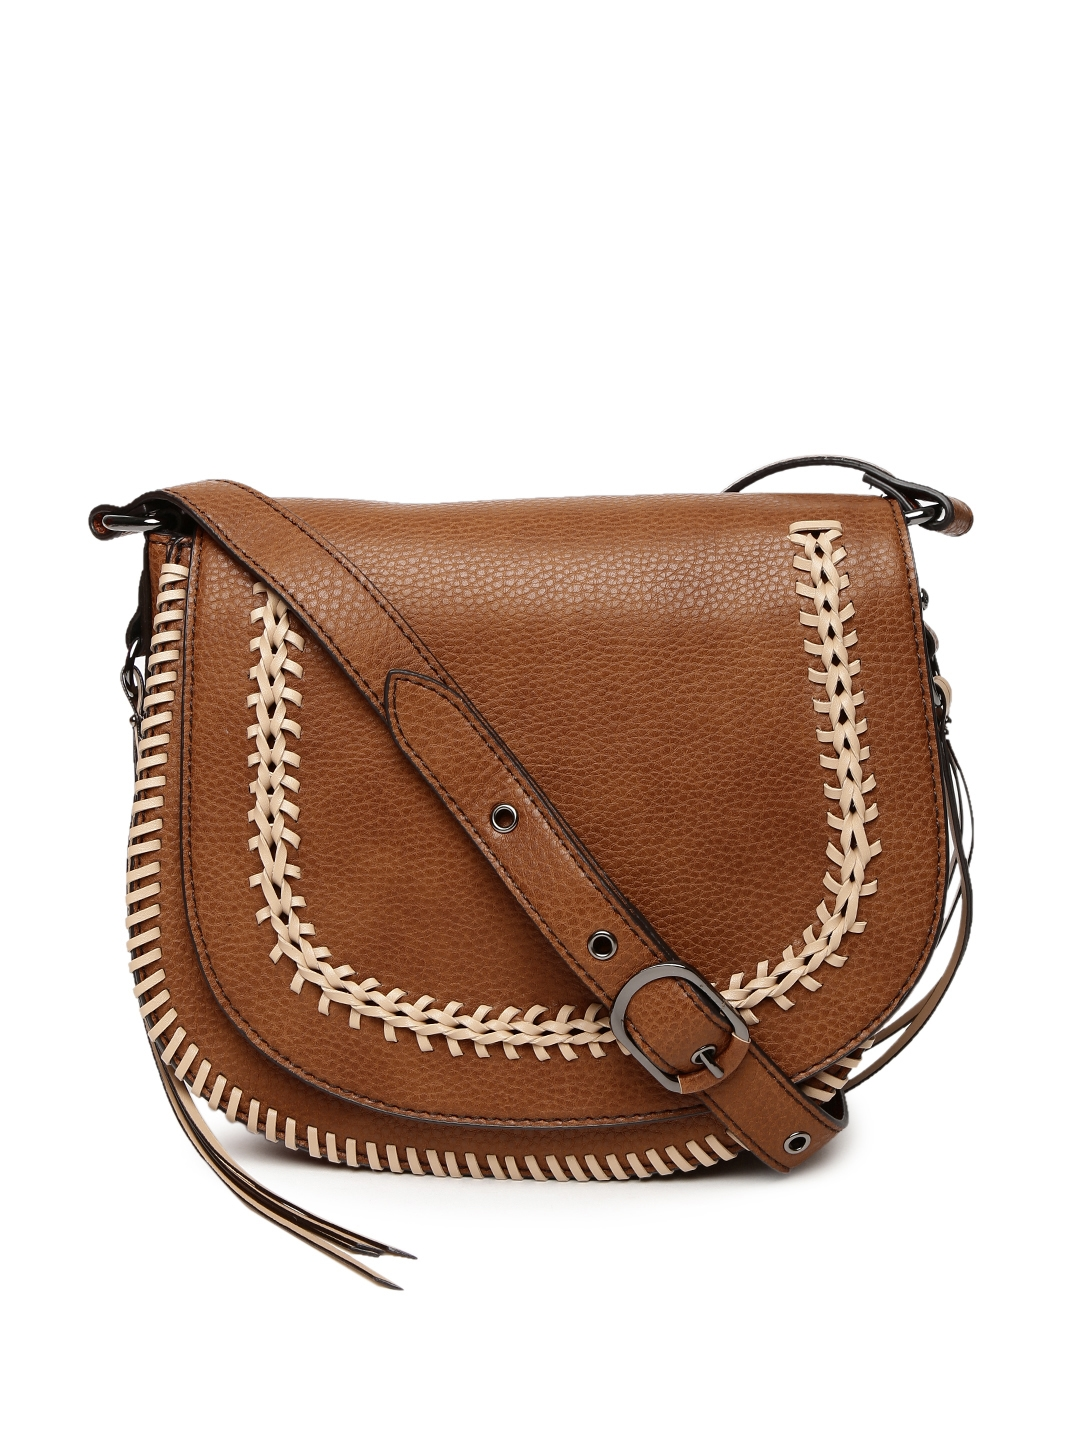 Buy ALDO Tan Miroissi Sling Bag - Handbags for Women | Myntra